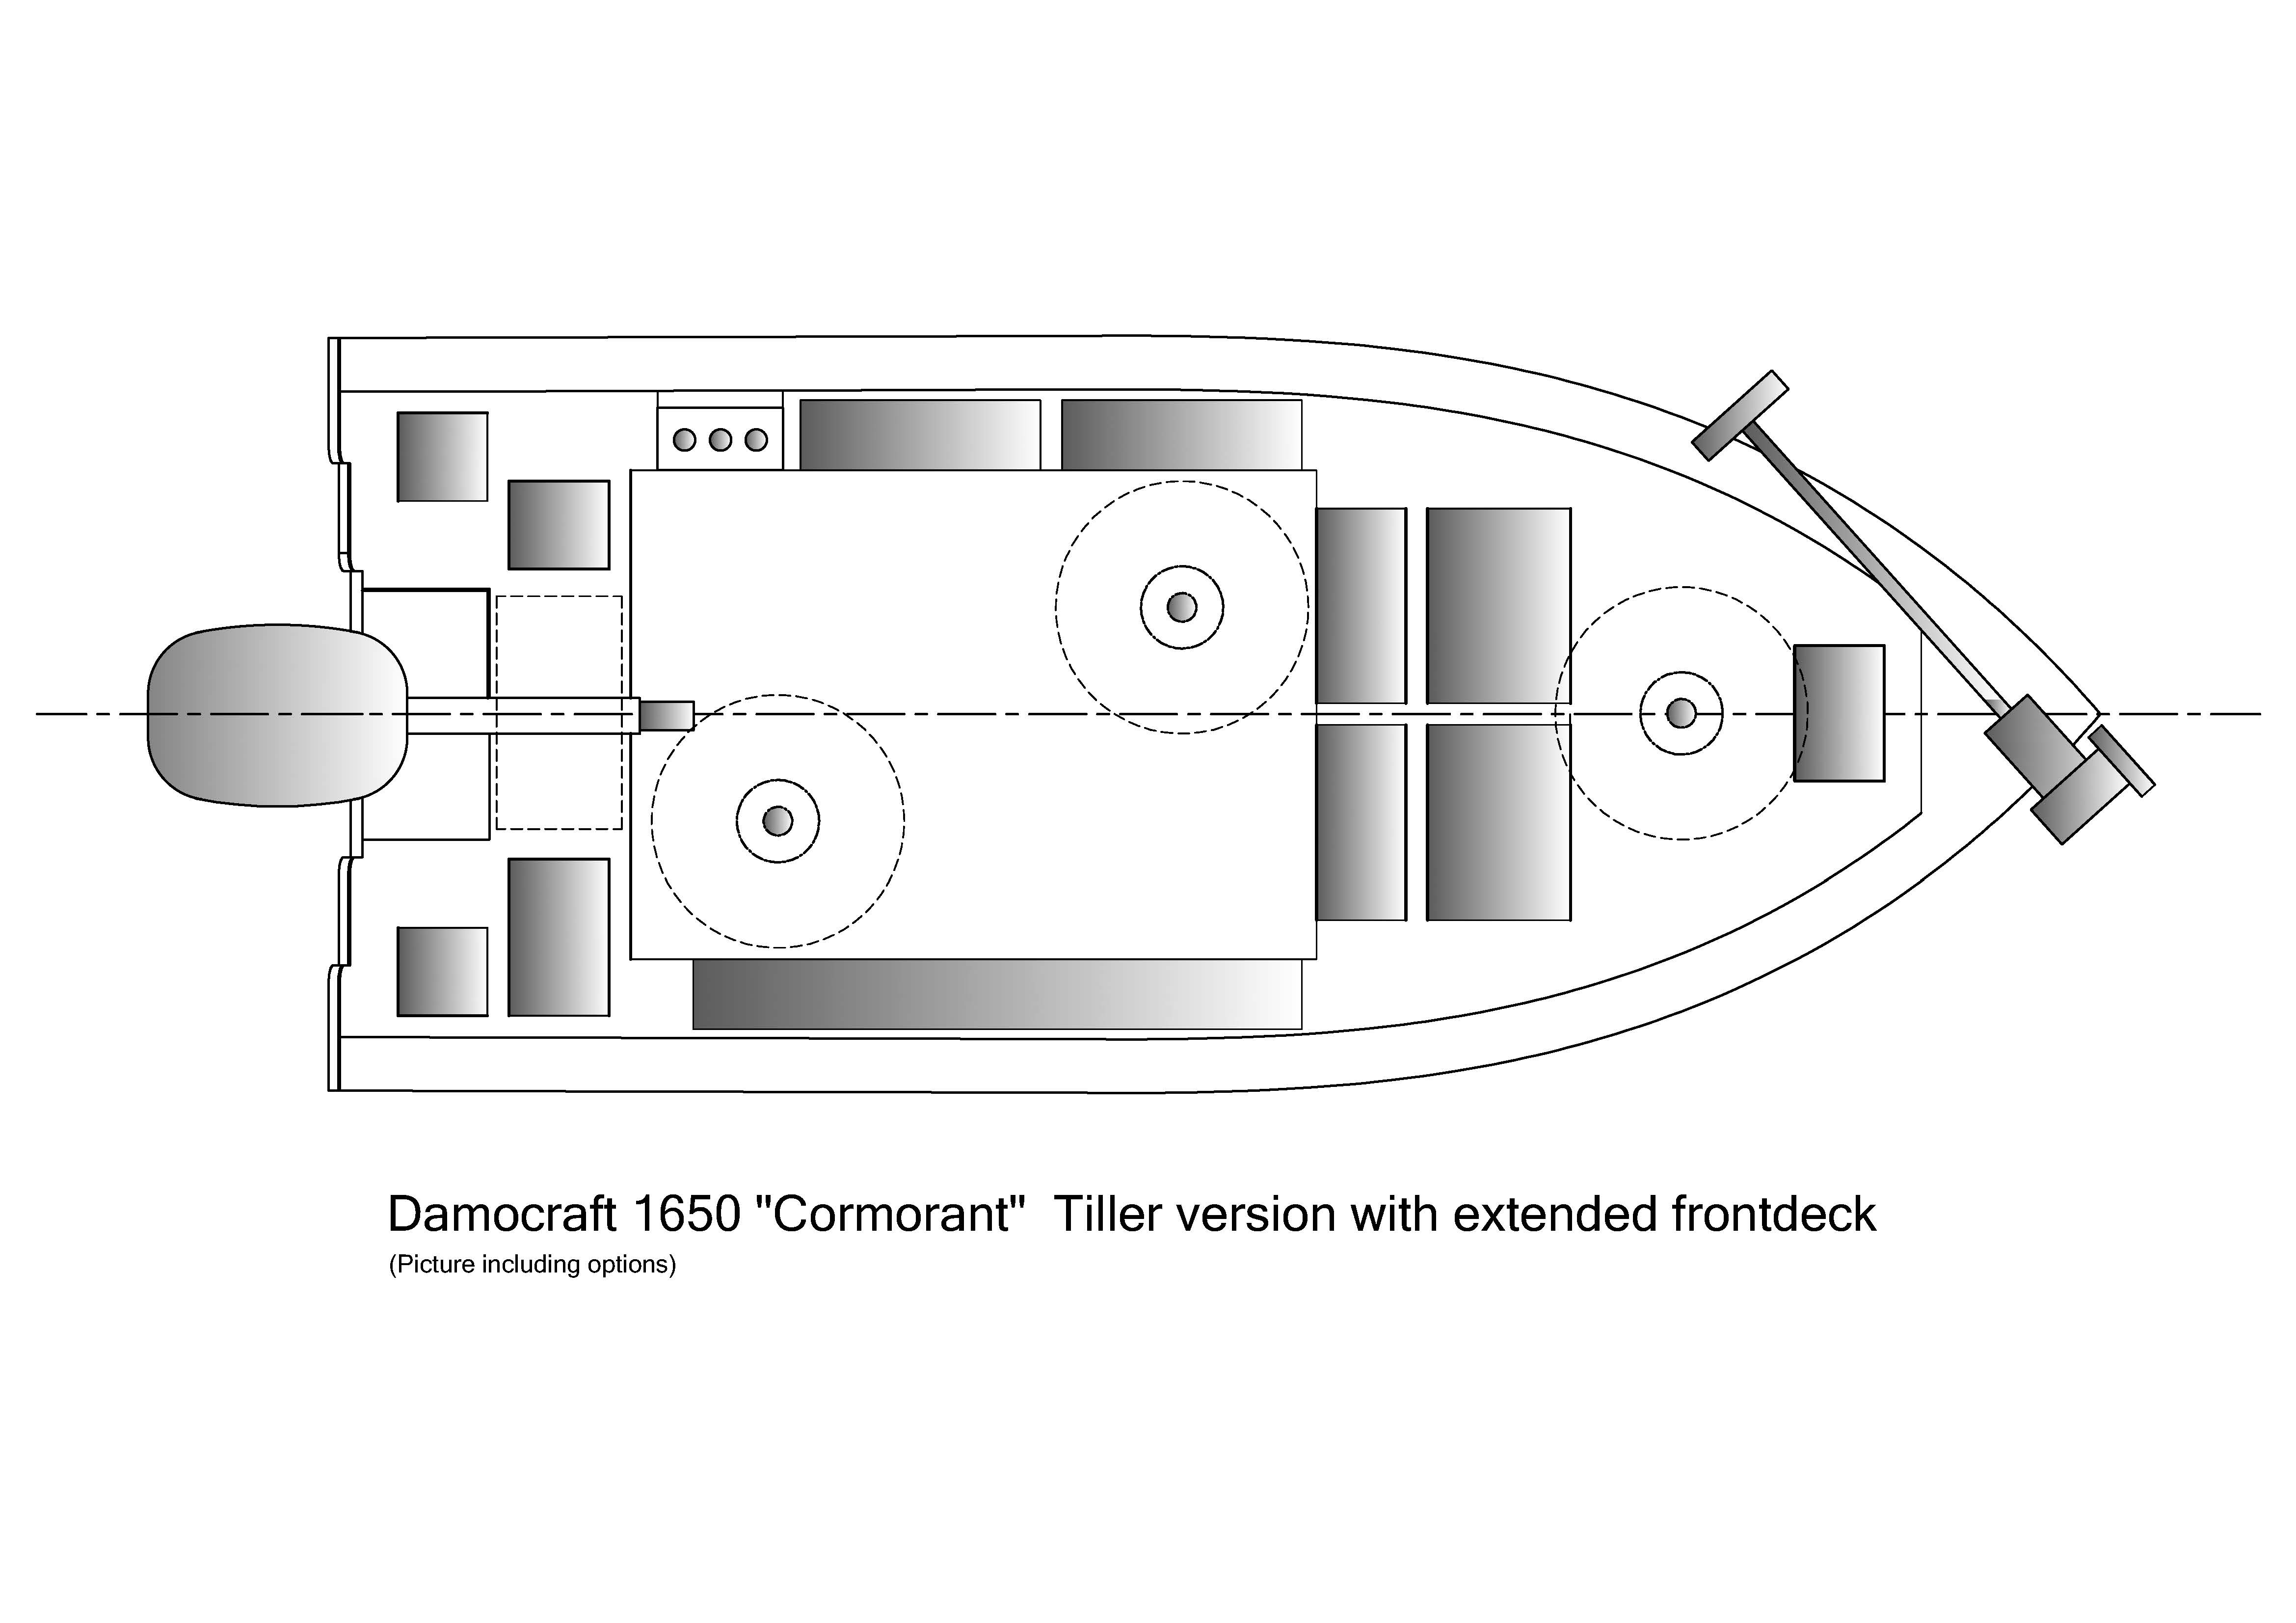 Damocraft 1650 Cormorant Tiller version with extended frontdeck